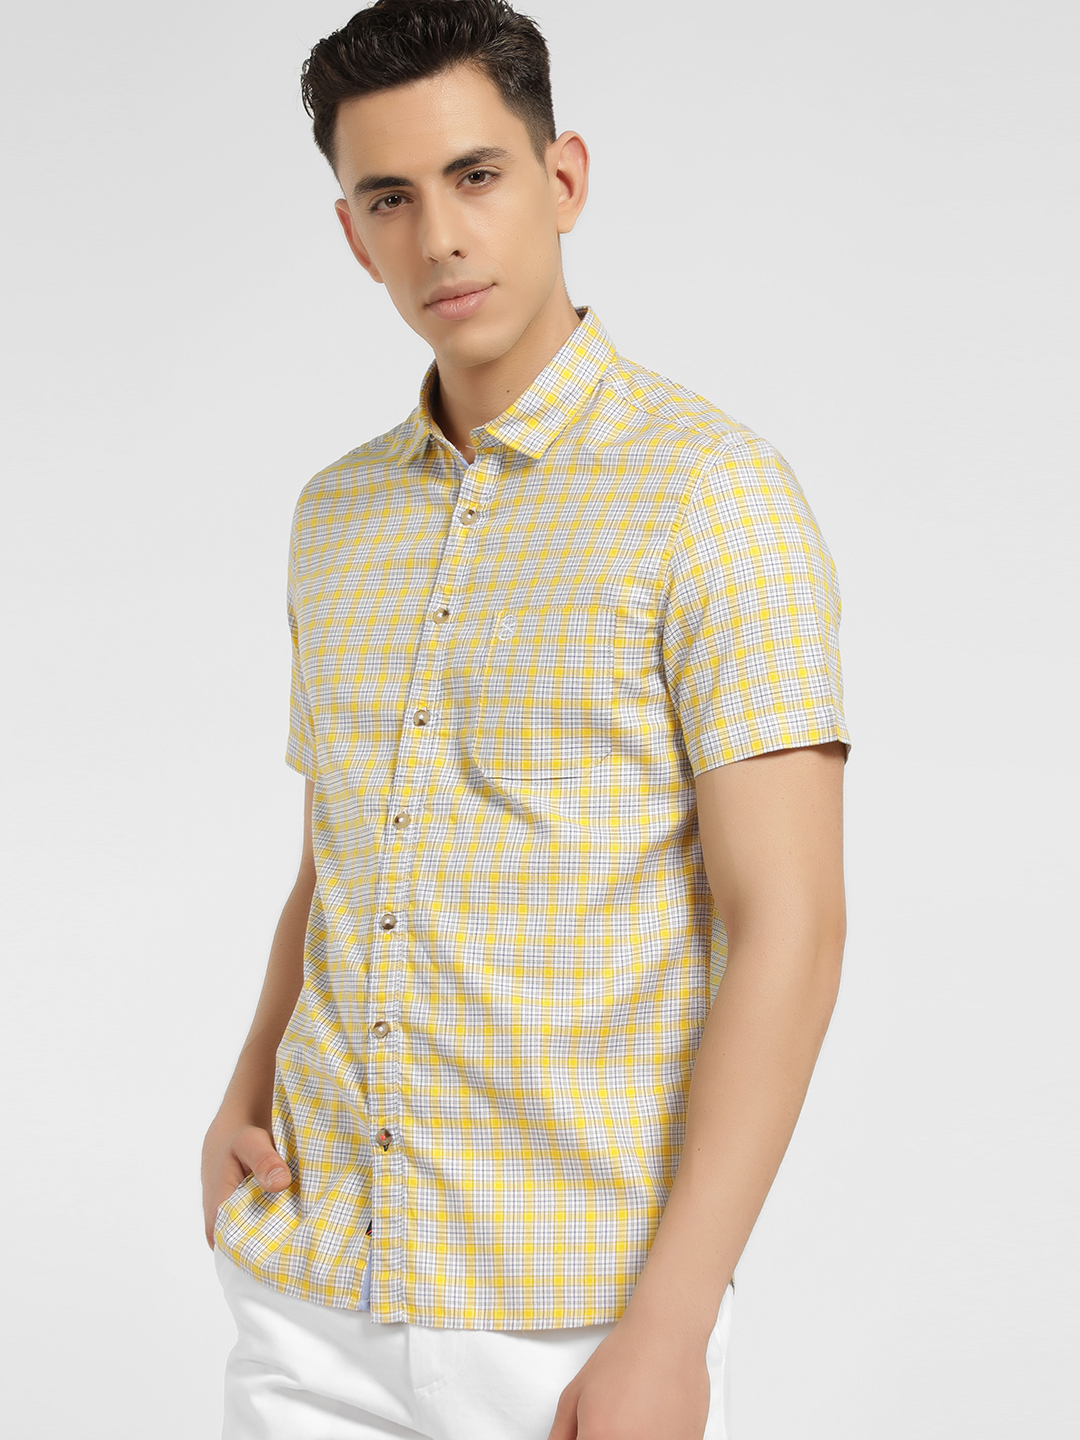 SCULLERS Yellow Multi-Check Slim Oxford Shirt 1